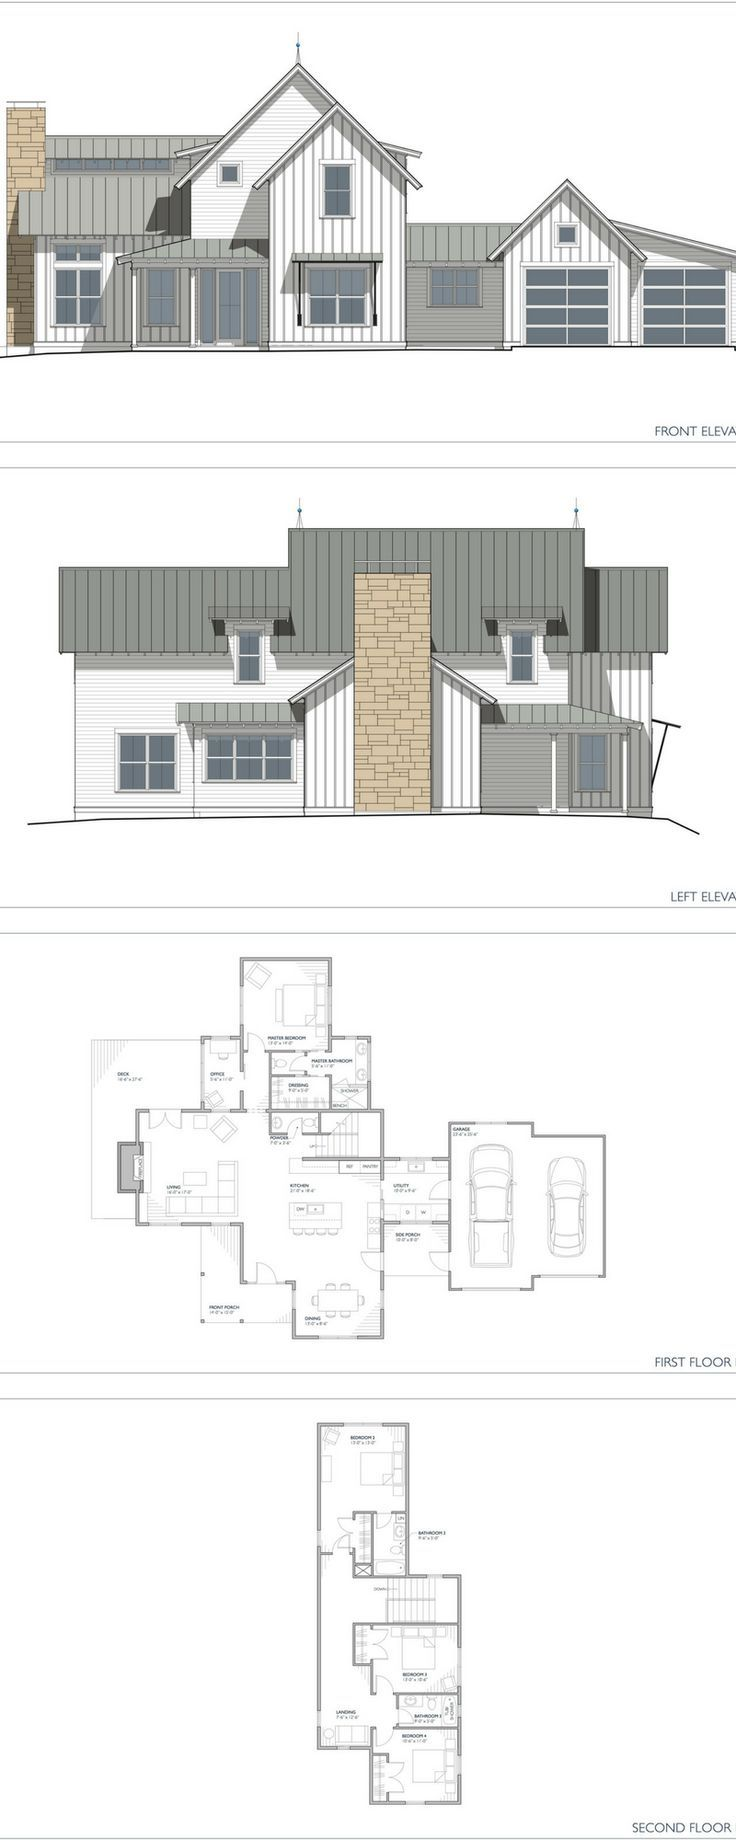 The Normande Modern Farmhouse plan! 2 story home with 4